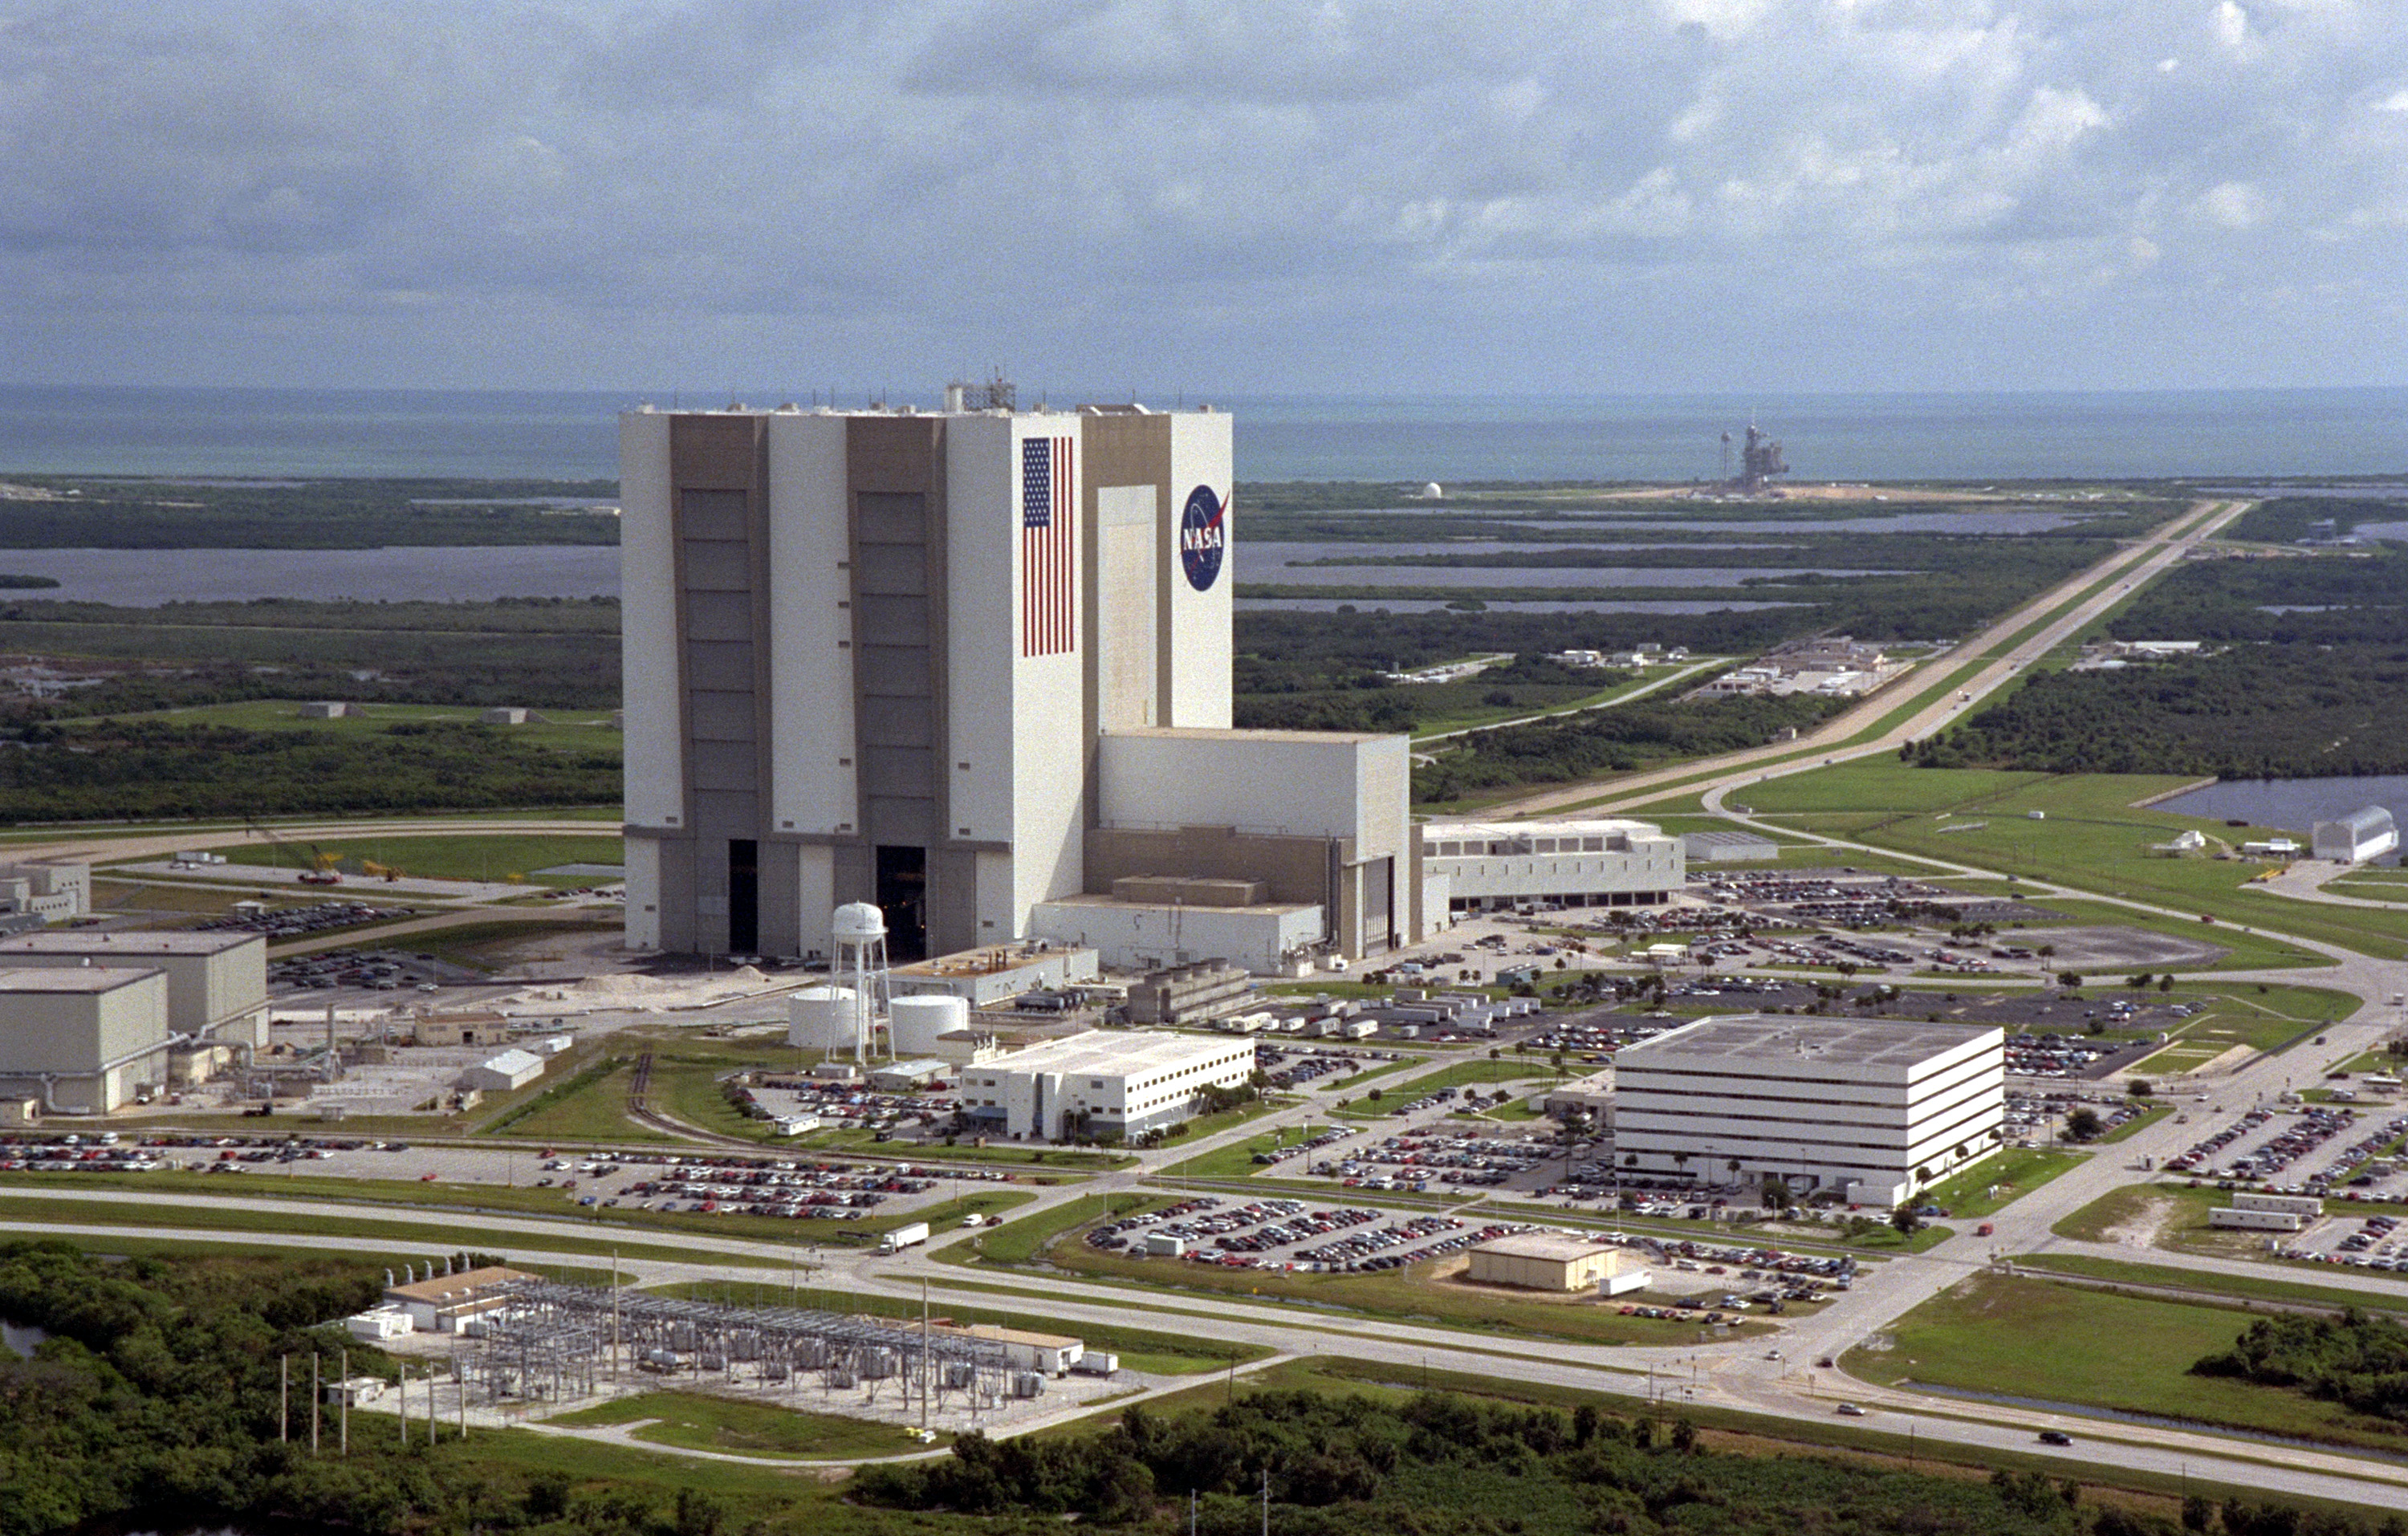 aerial-view-of-the-vehicle-assembly-building-at-kennedy-space-center